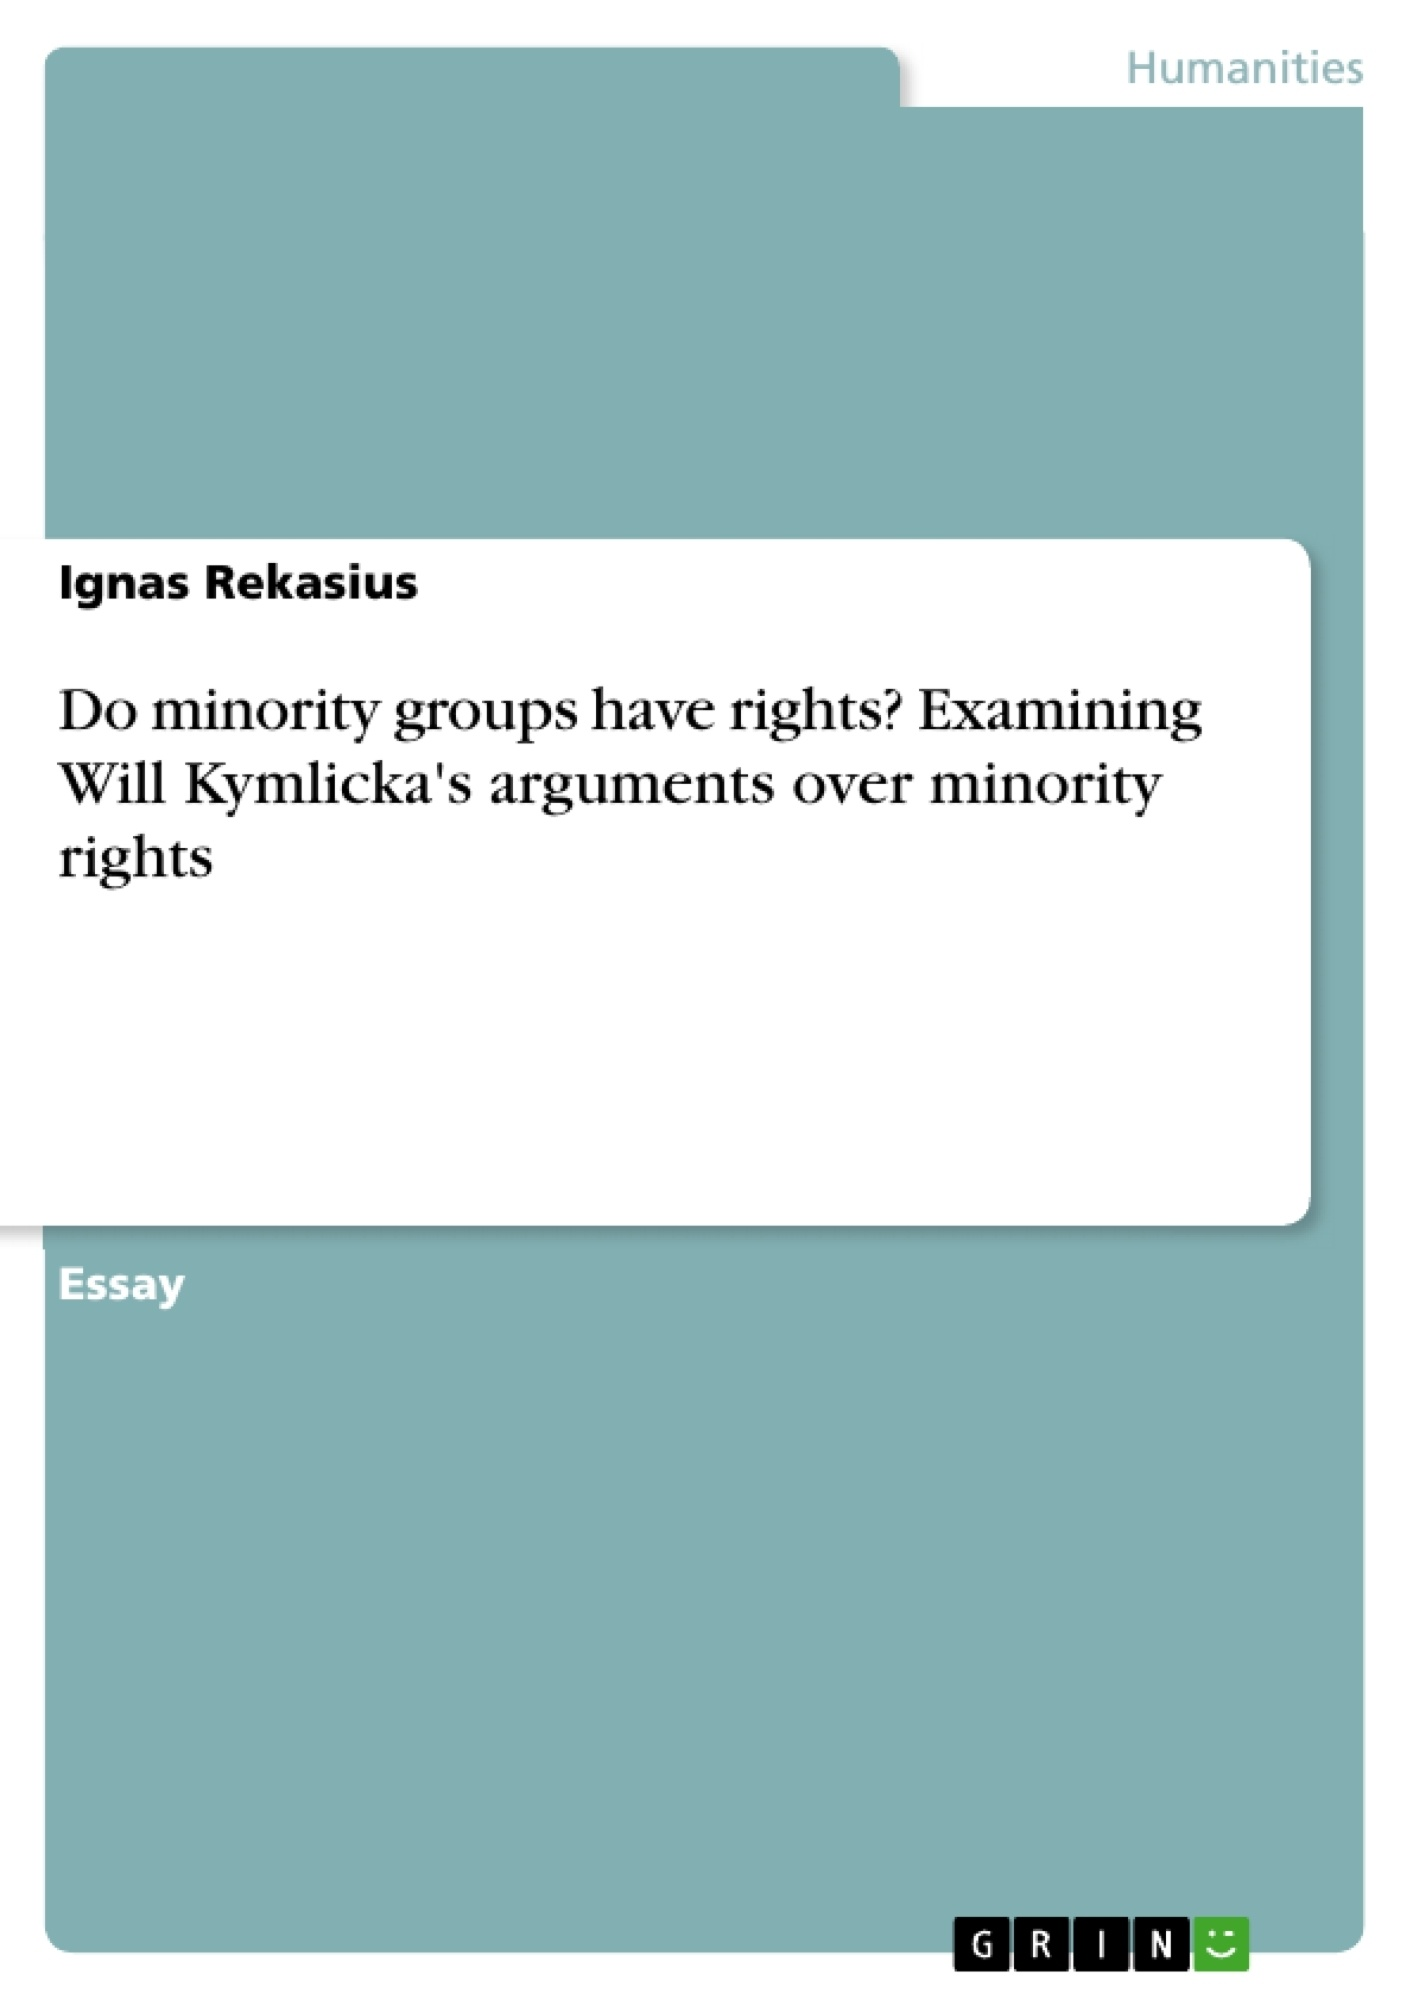 Title: Do minority groups have rights? Examining Will Kymlicka's arguments over minority rights